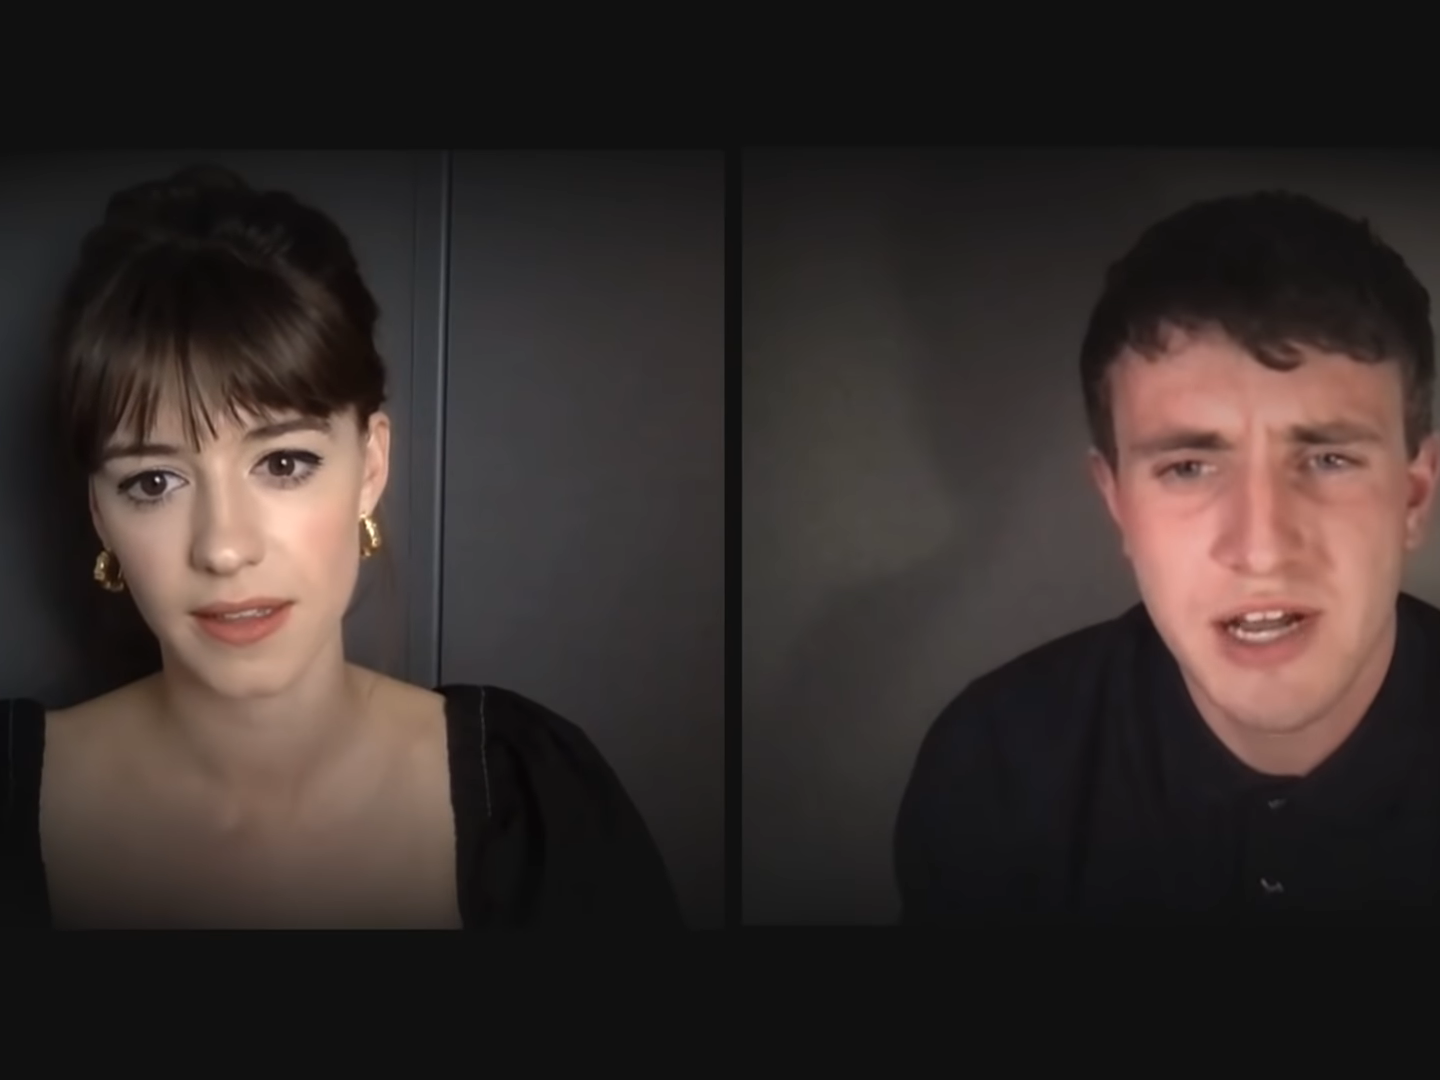 Normal People stars Daisy Edgar Jones and Paul Mescal perform sexually charged scene from Gordon Ramsay's Kitchen Nightmares